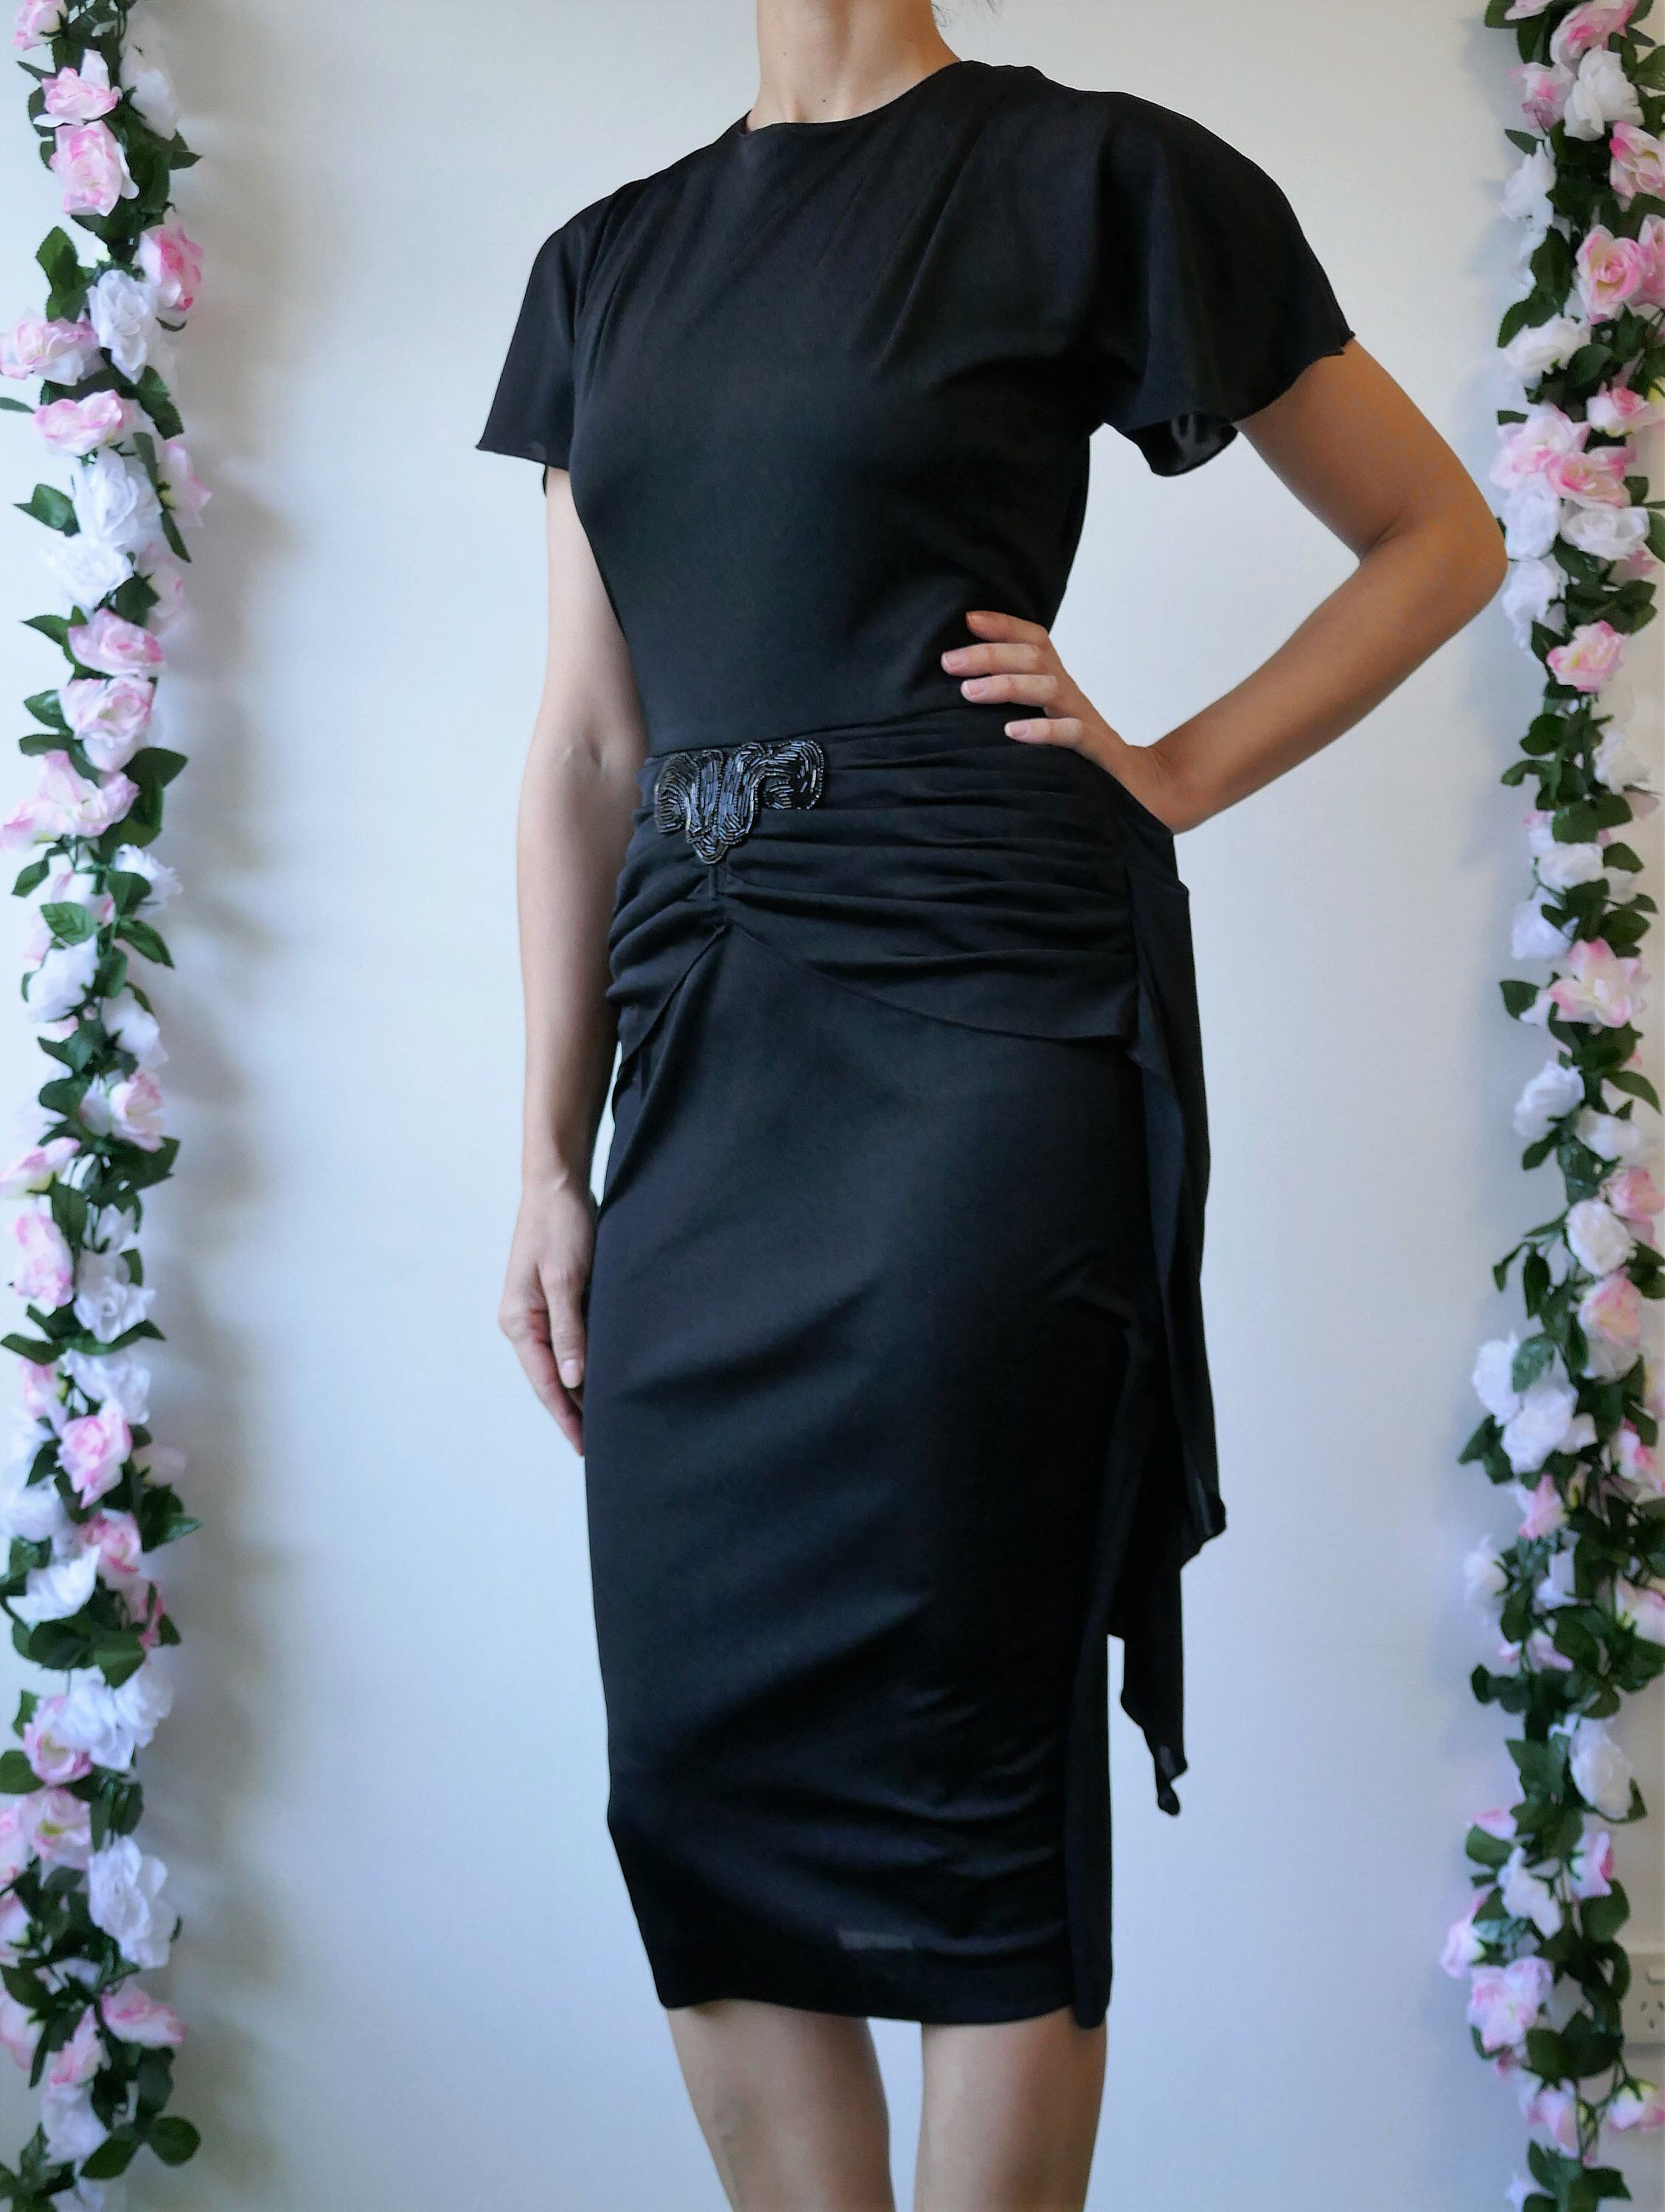 S cocktail dress size m black by ricky renee vintage party